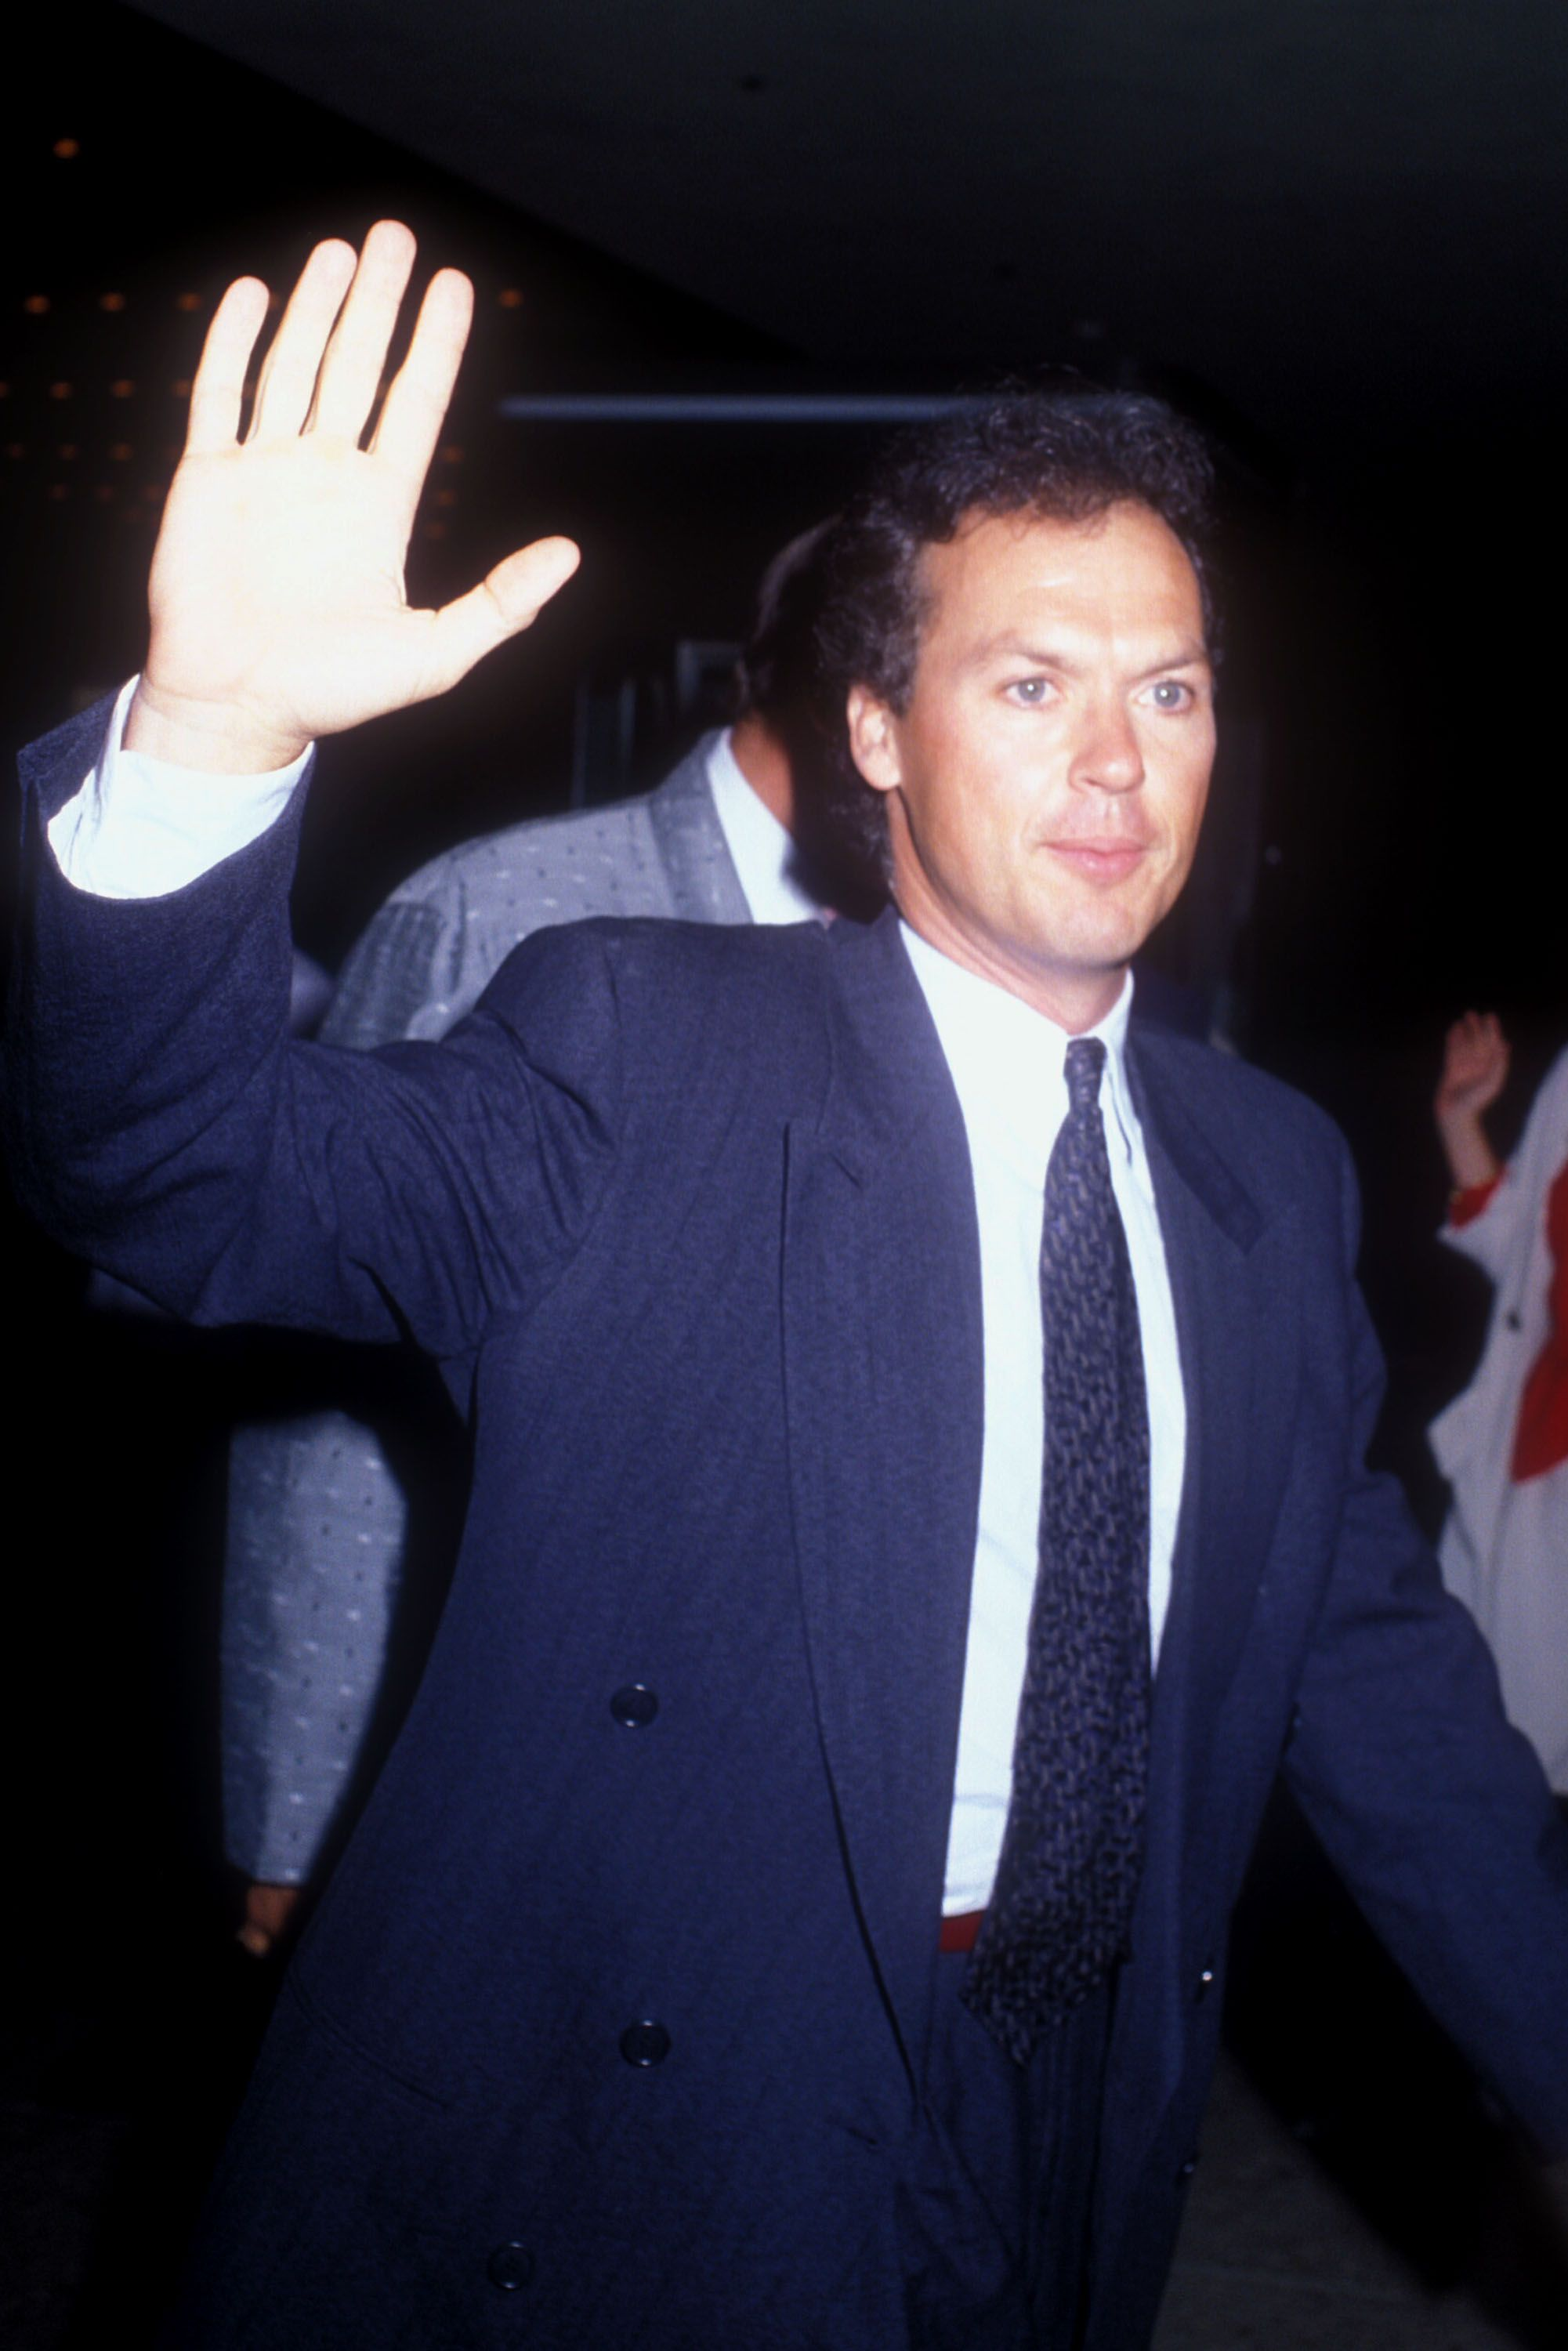 Michael Keaton at 36 Before he was Birdman, Keaton was Batman.